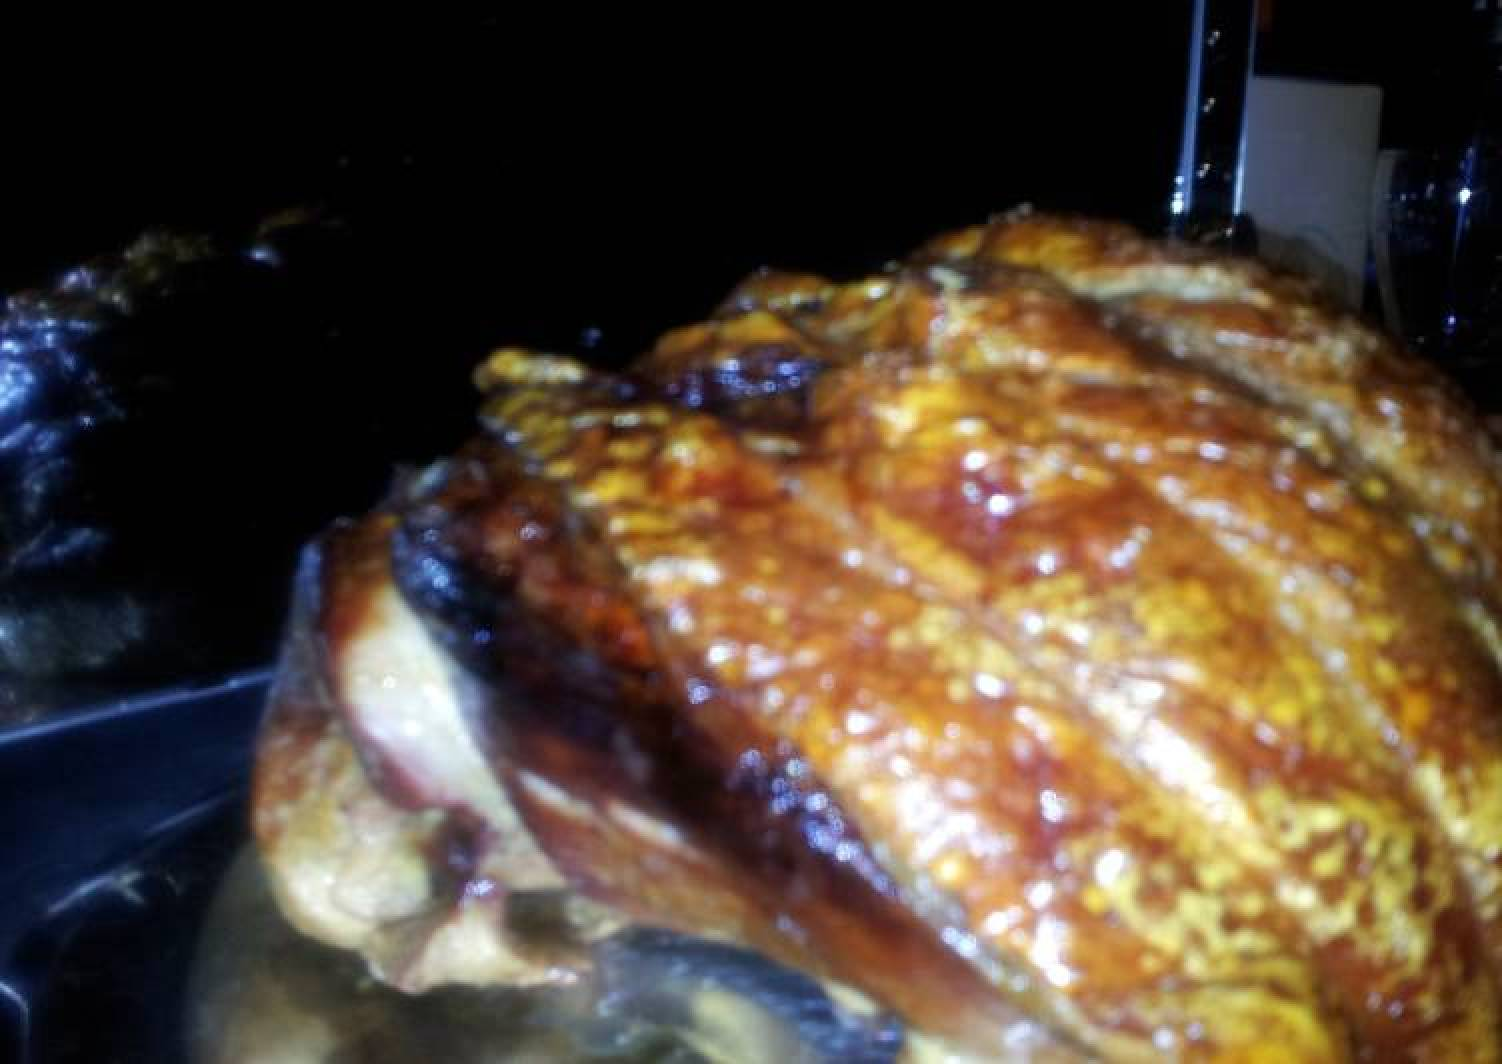 Traditional English roasted leg of pork with perfect crackling